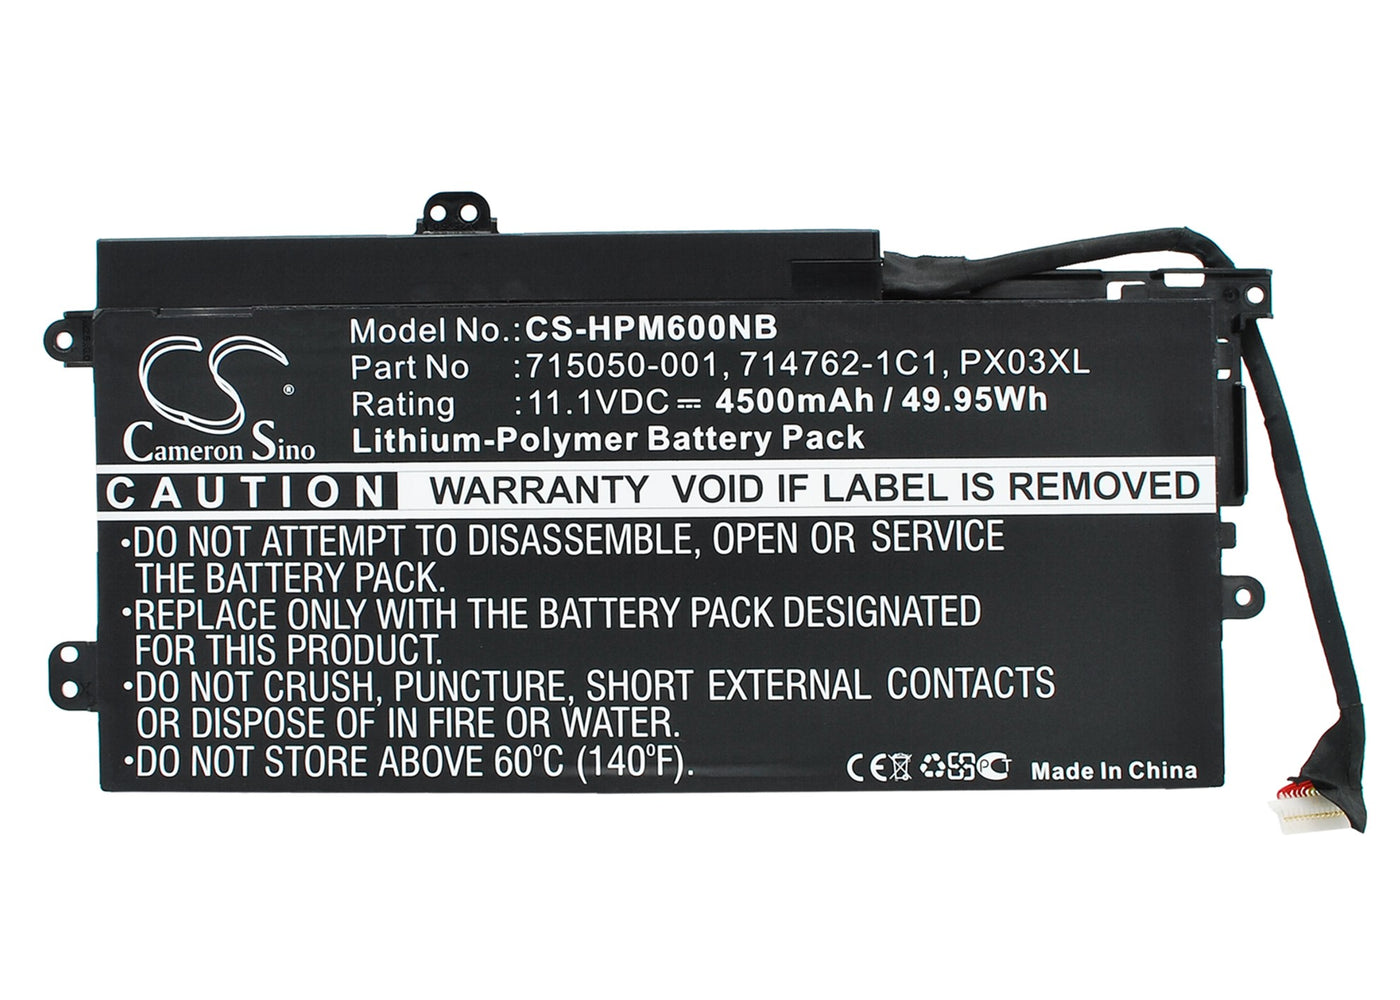 CS-HPM600NB Cameron Sino Battery